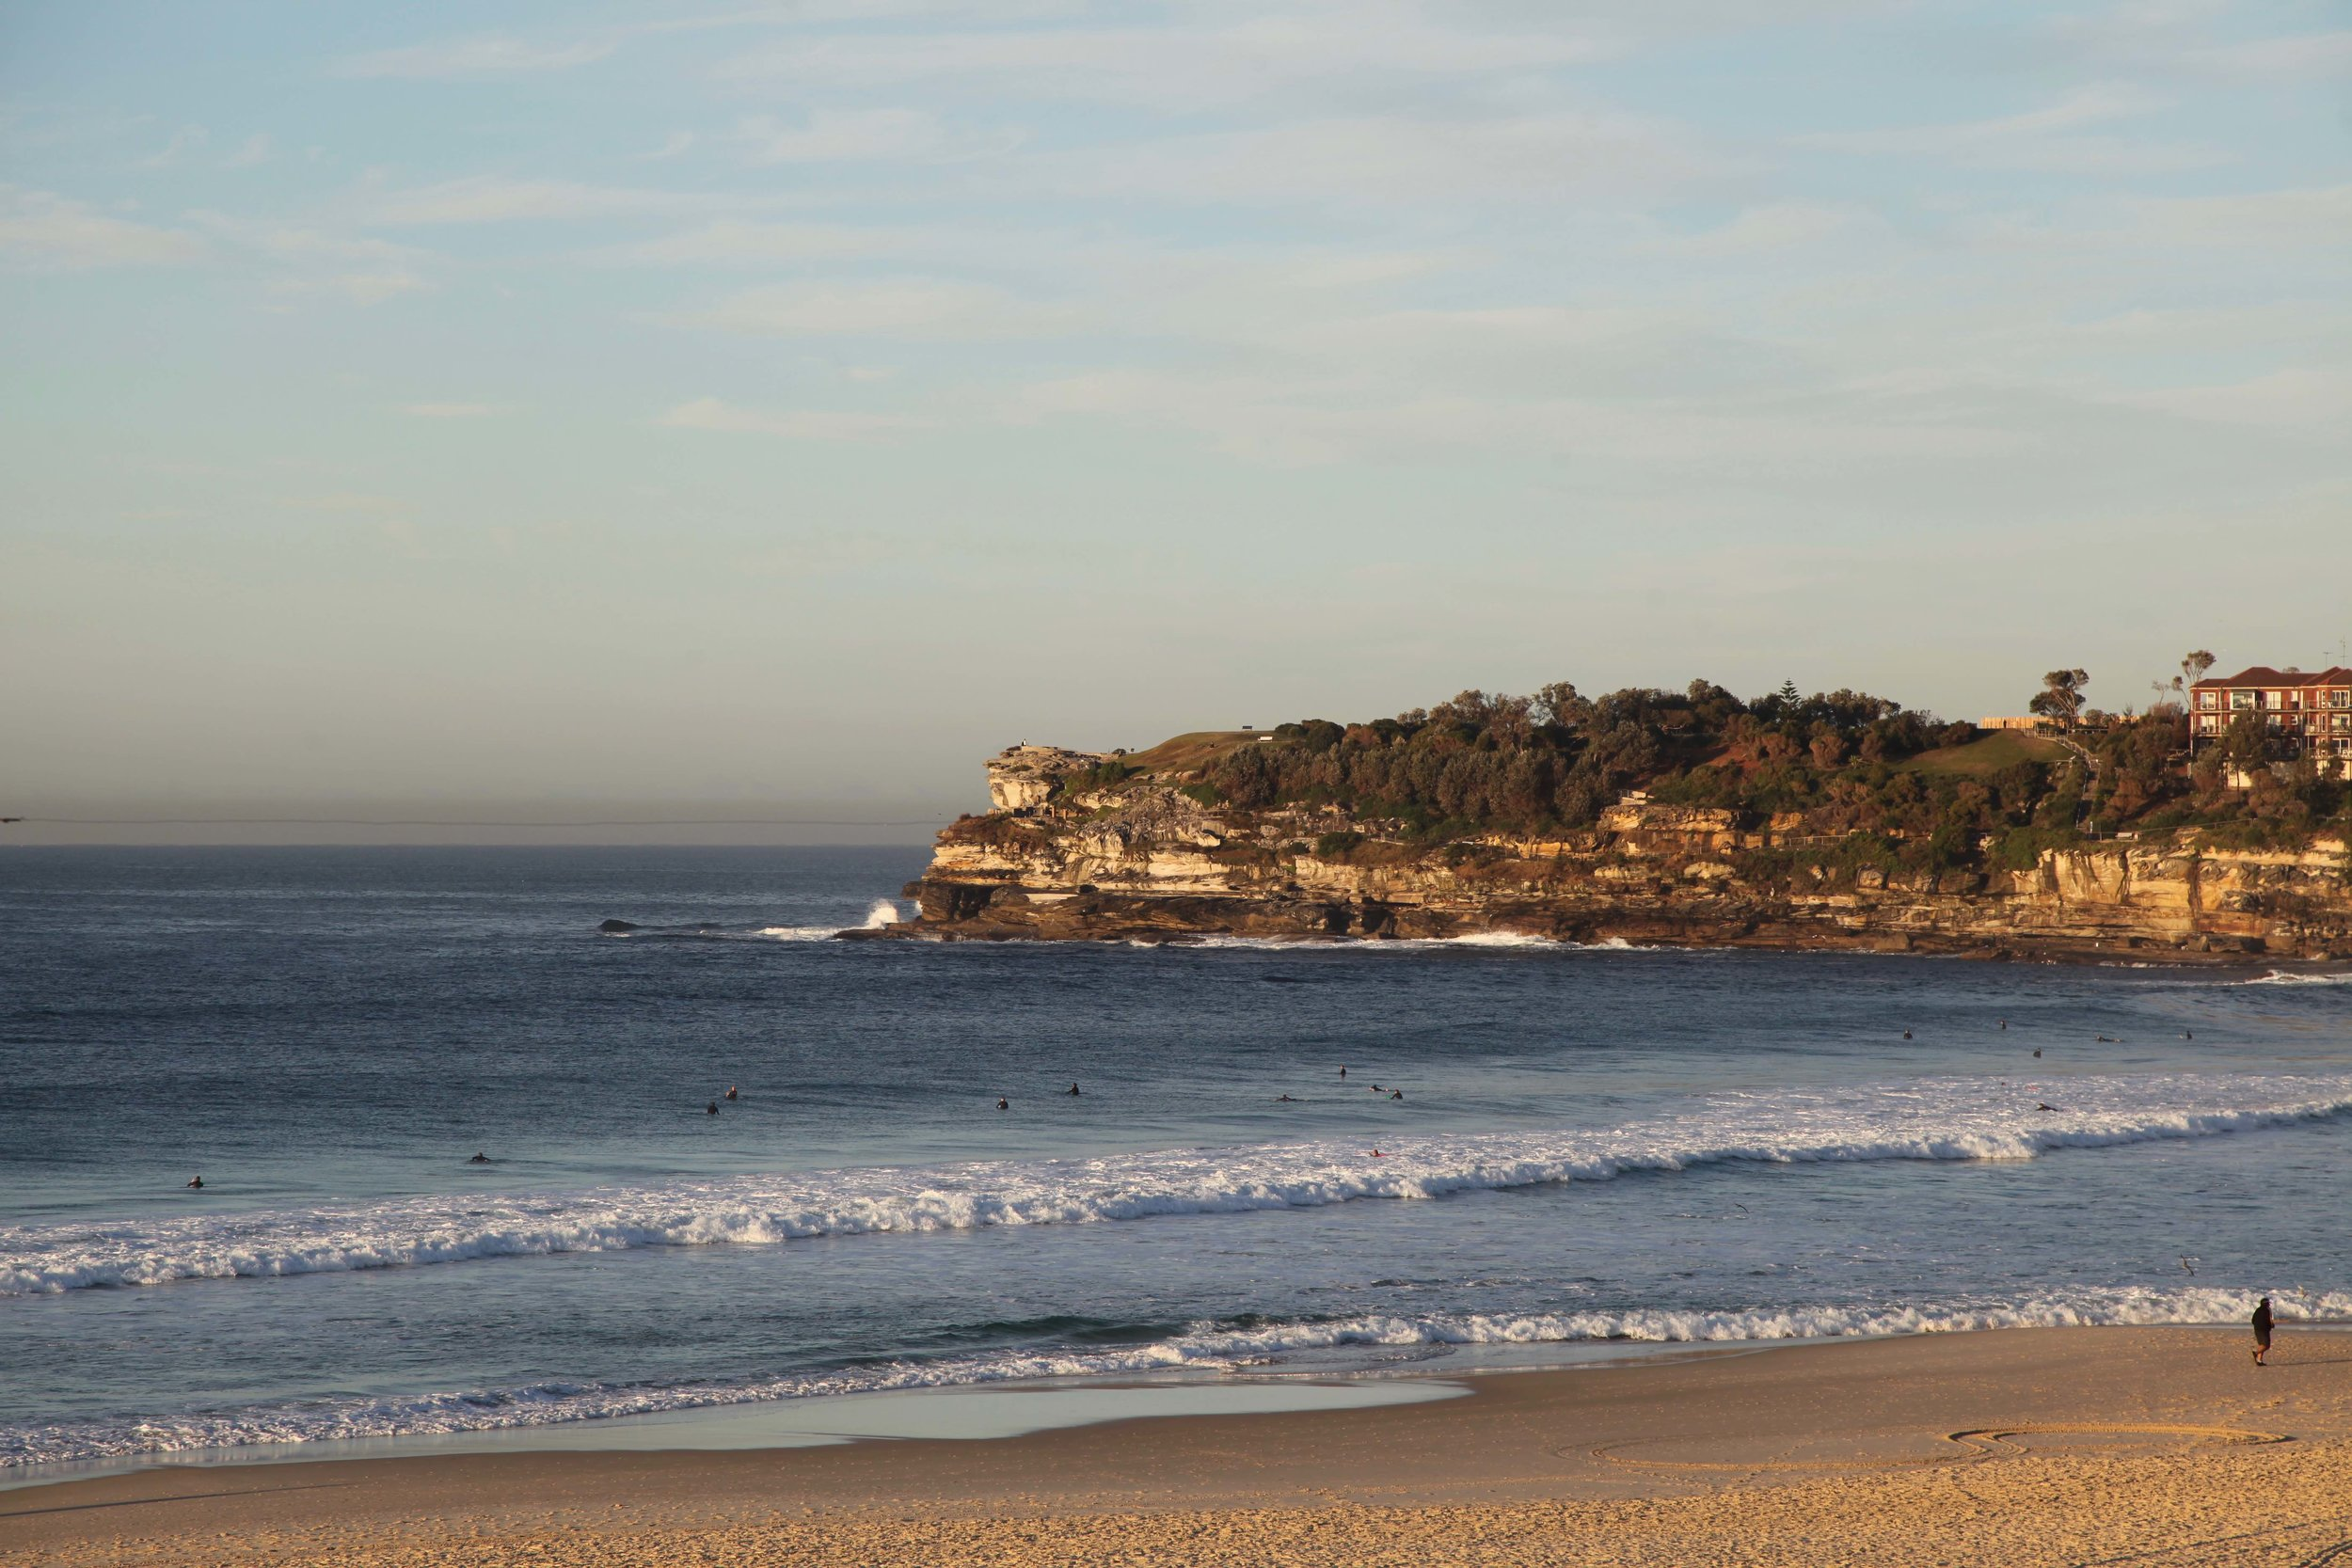 Surfers waiting for waves at Bondi Beach in the morning.